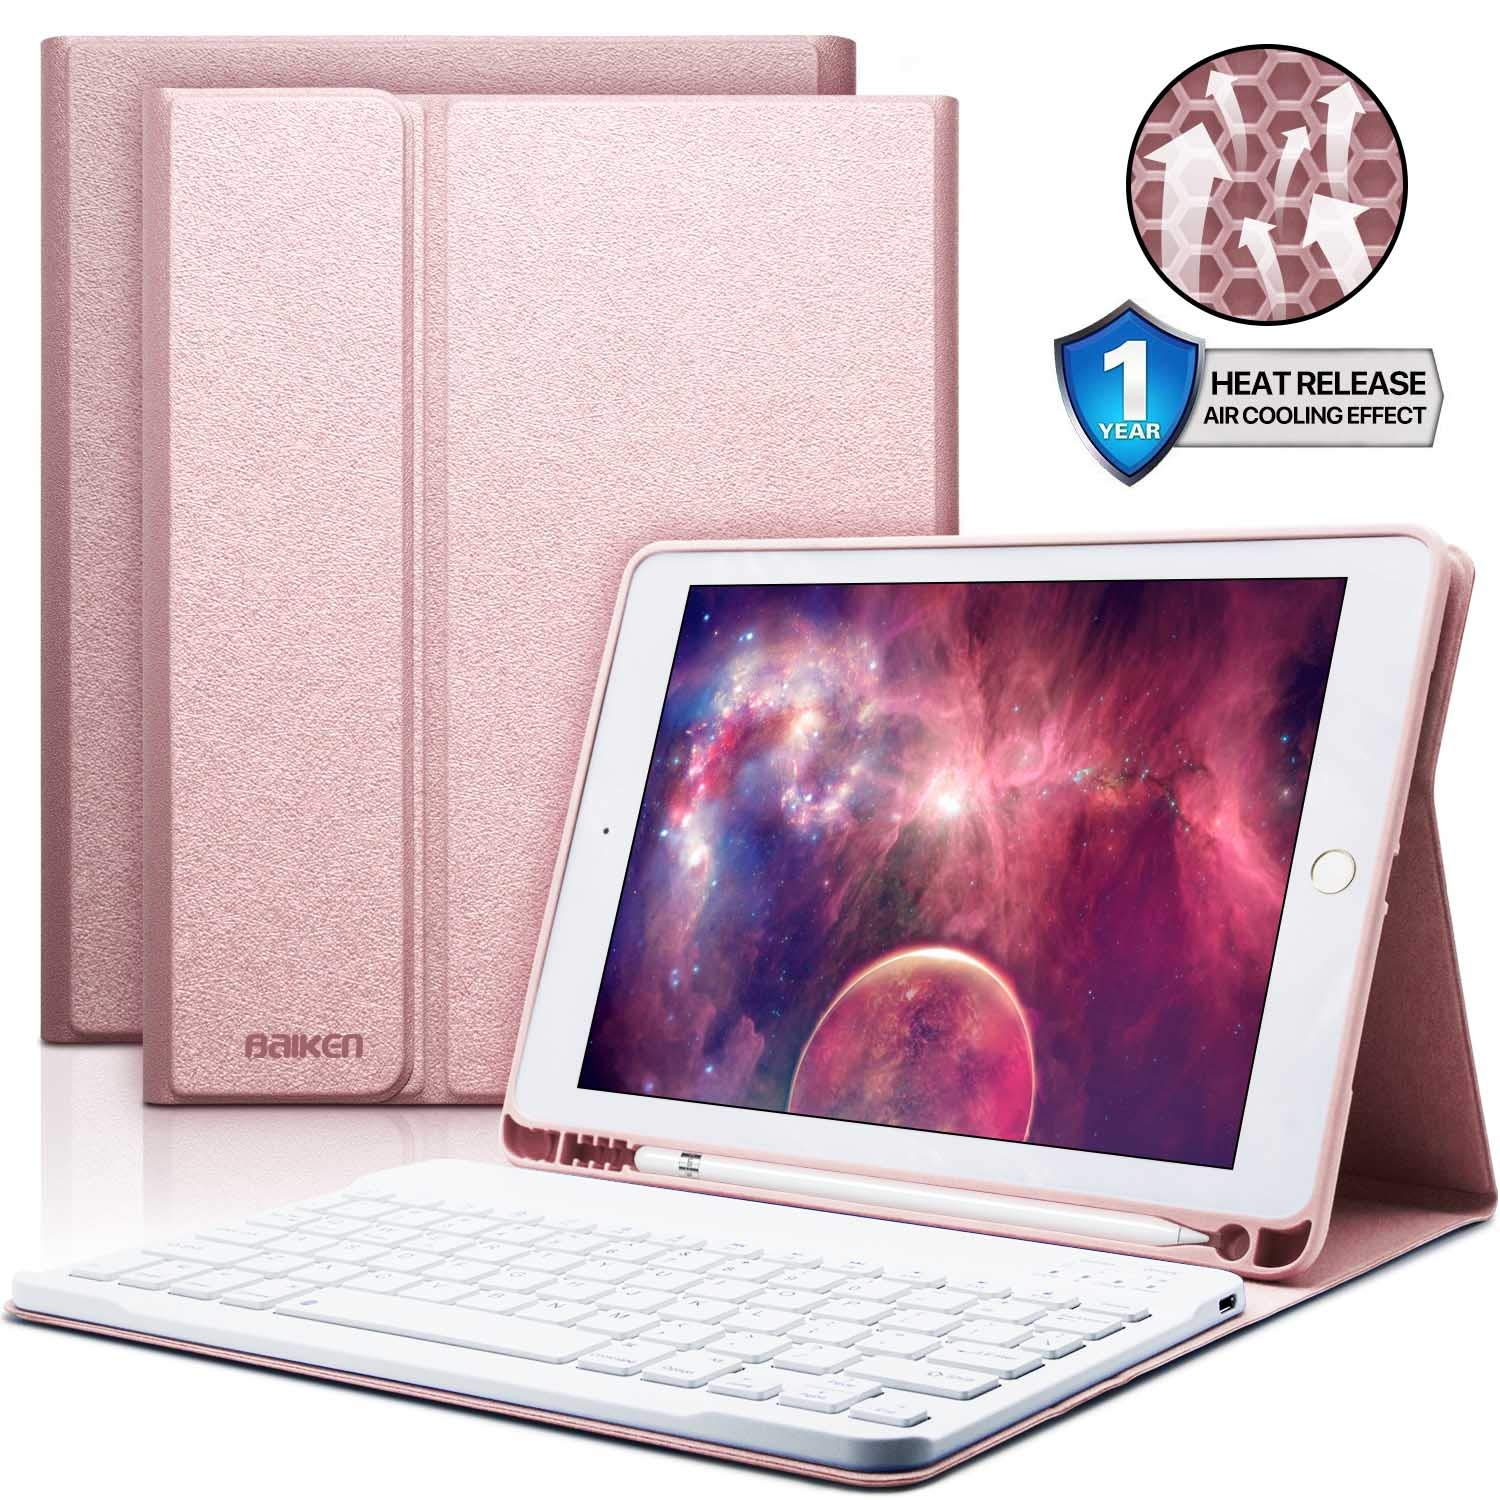 iPad Keyboard Case 9.7 with Pencil Holder for iPad 2018 (6th Gen)/iPad 2017 (5th Gen)/iPad Pro 9.7/iPad Air 2&1-Bluetooth Wireless Detachable Keyboard - iPad Case with Keyboard (Pink)